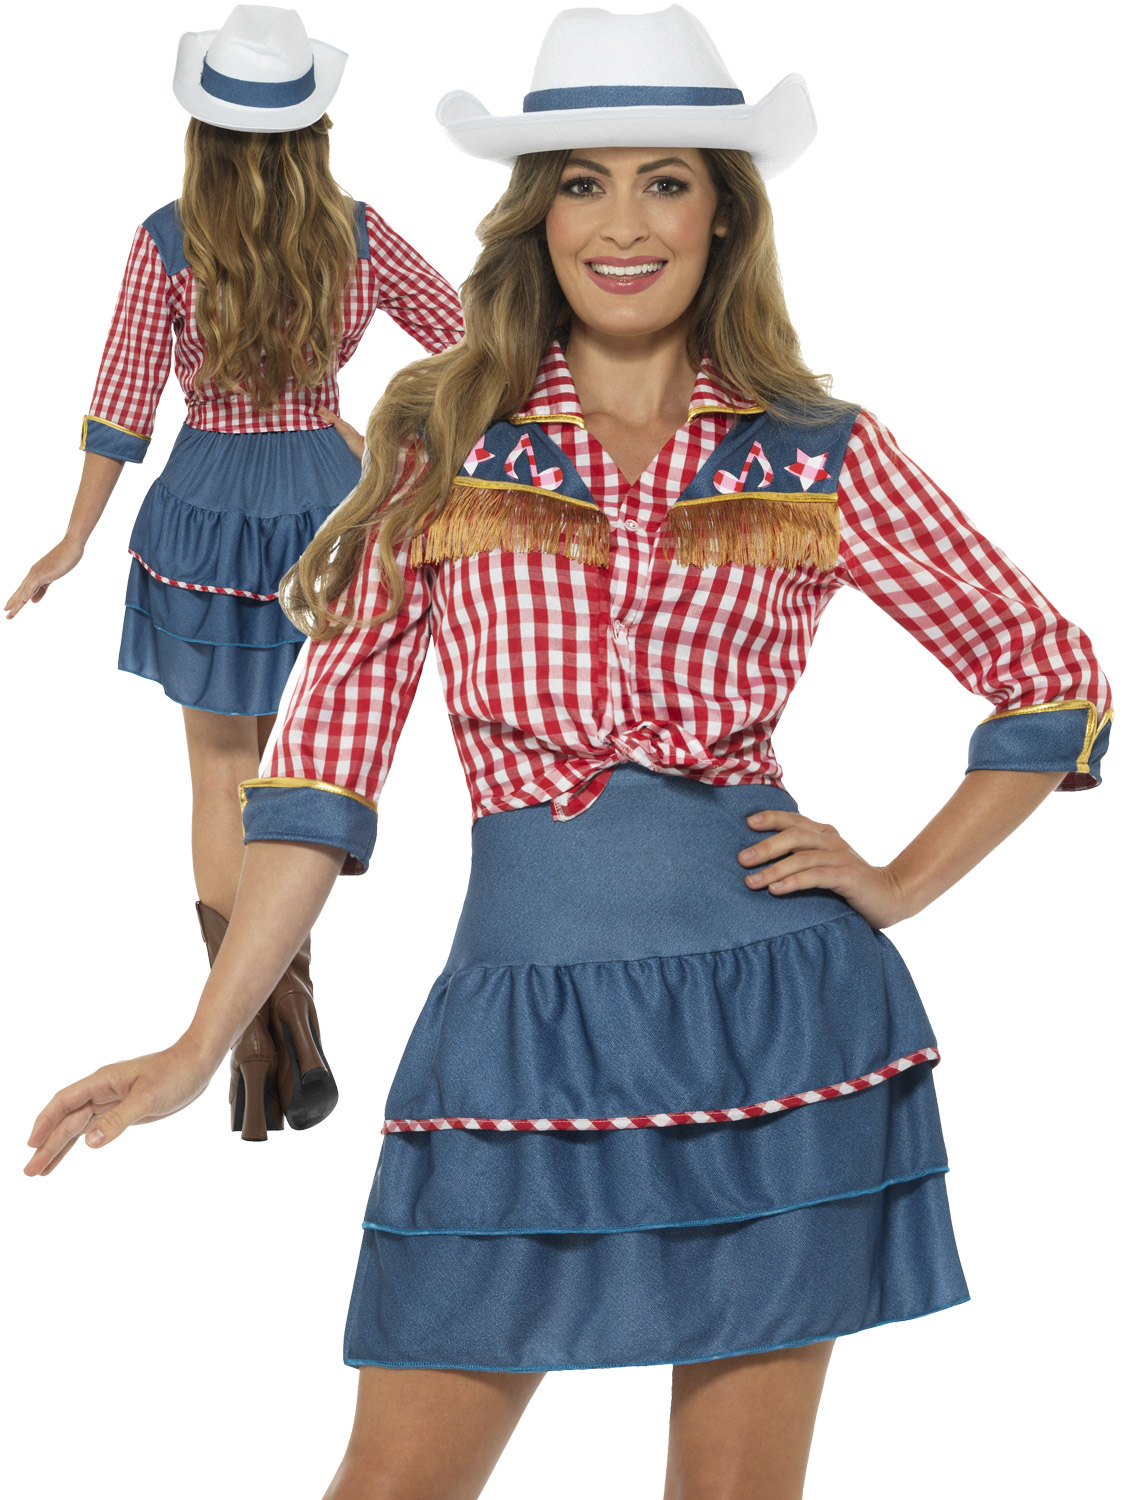 Ladies cowgirl costume adult rodeo doll fancy dress womens western transform yourself into a cowgirl with this ladies rodeo doll costume perfect for a western themed party solutioingenieria Choice Image